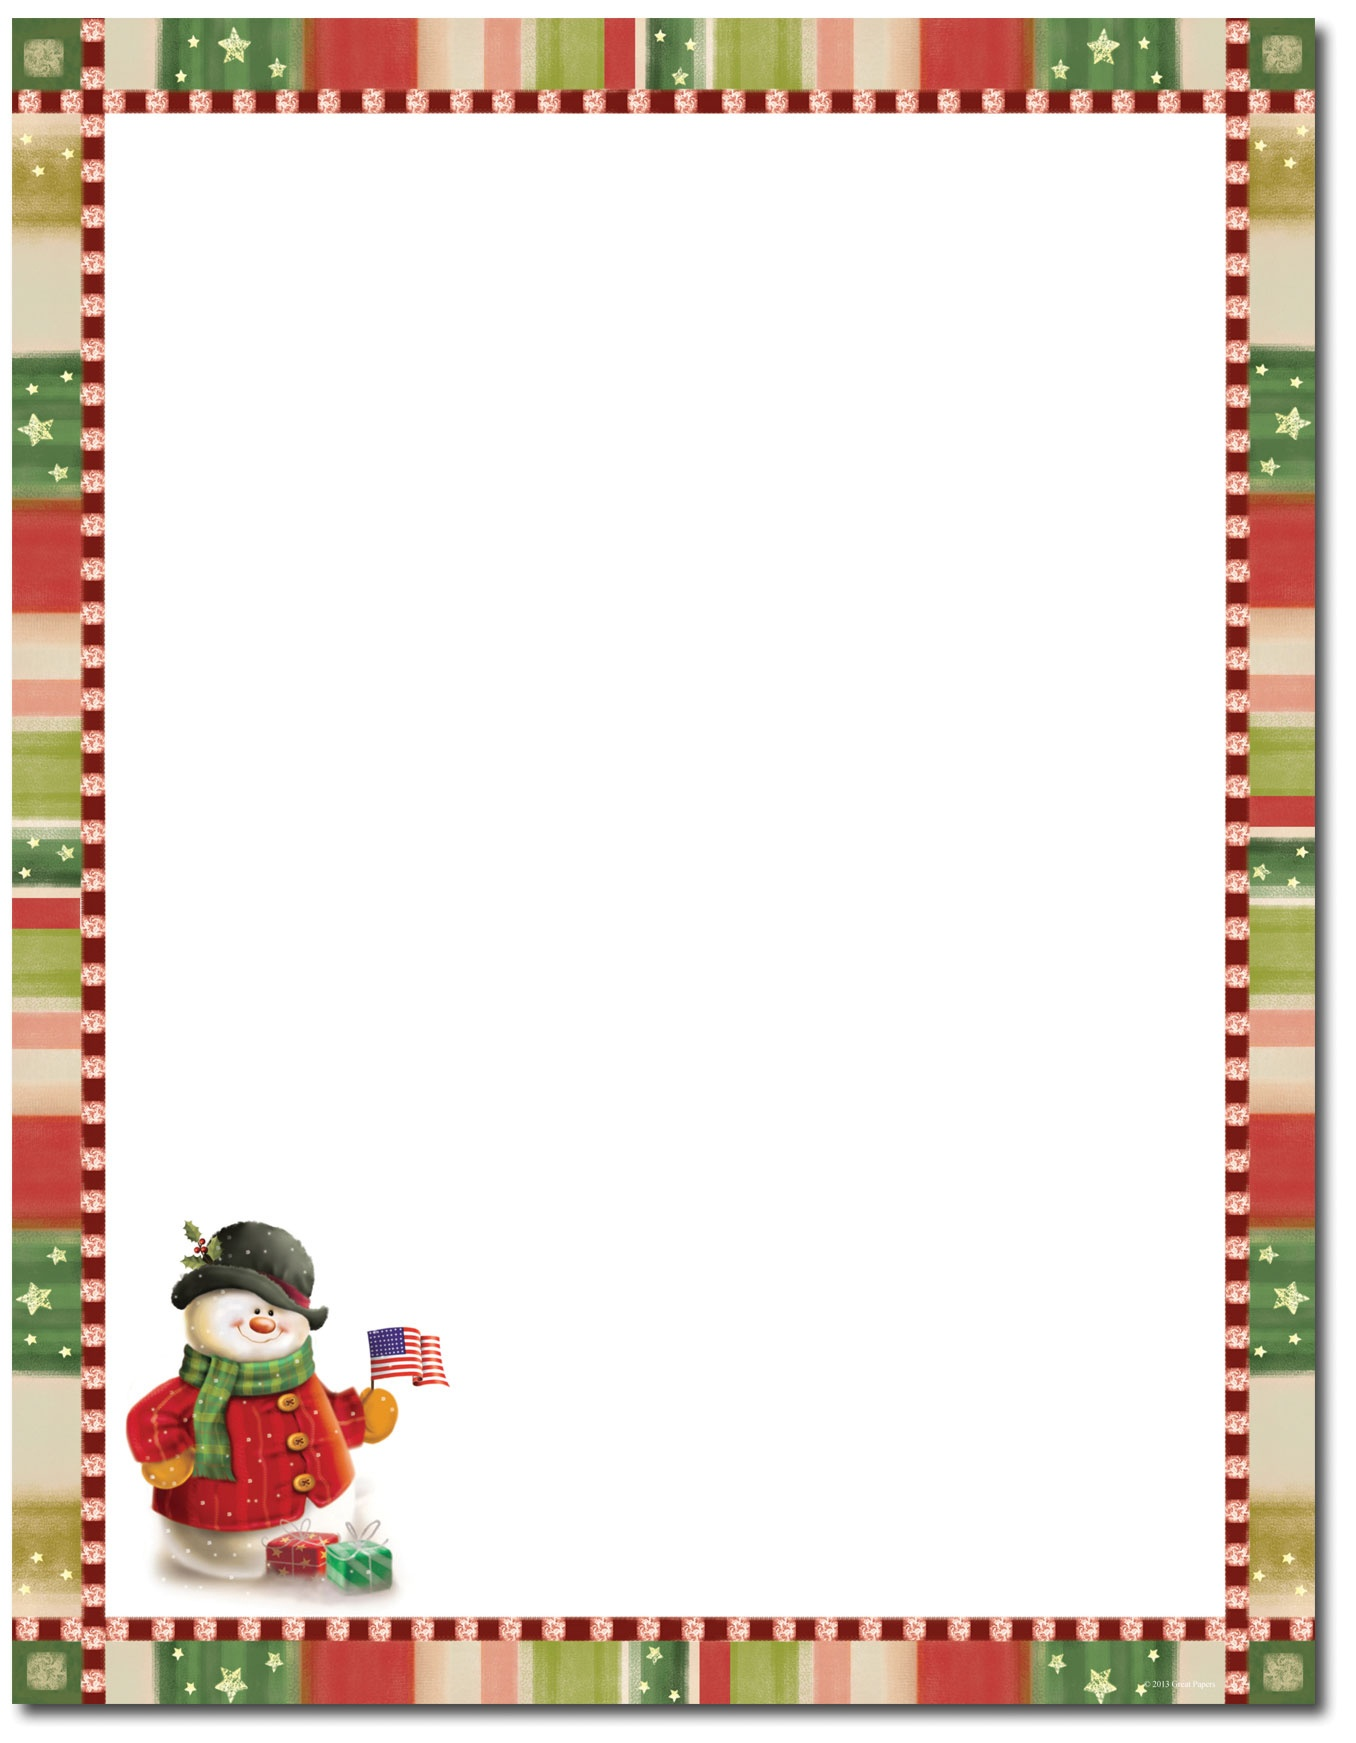 Free Christmas Stationary Cliparts, Download Free Clip Art, Free - Free Printable Christmas Stationary Paper